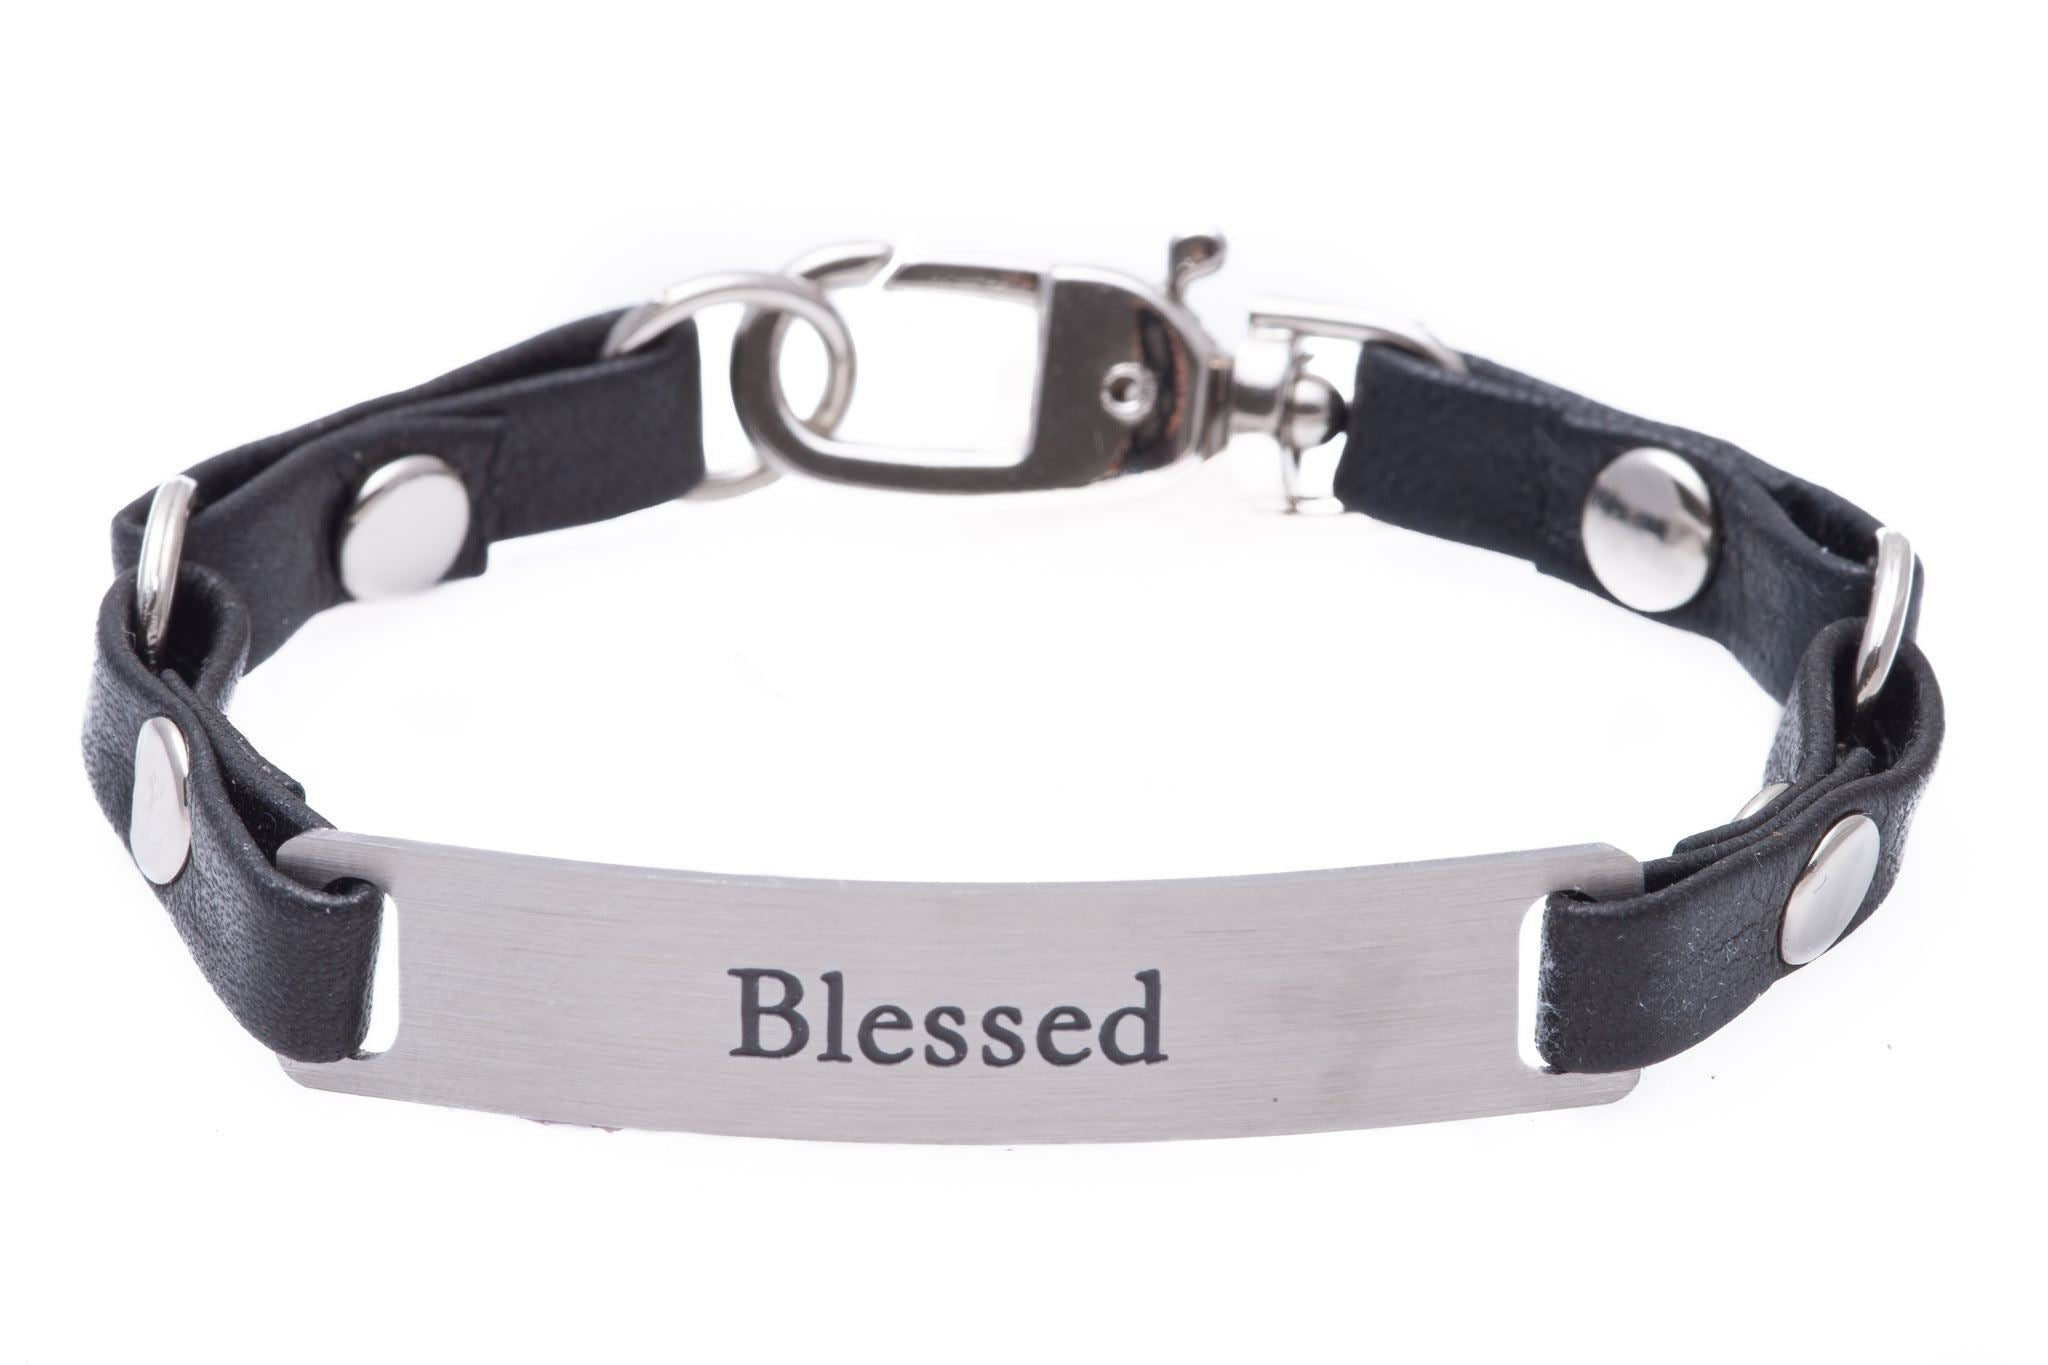 Mini Message Bracelet Black Leather Blessed